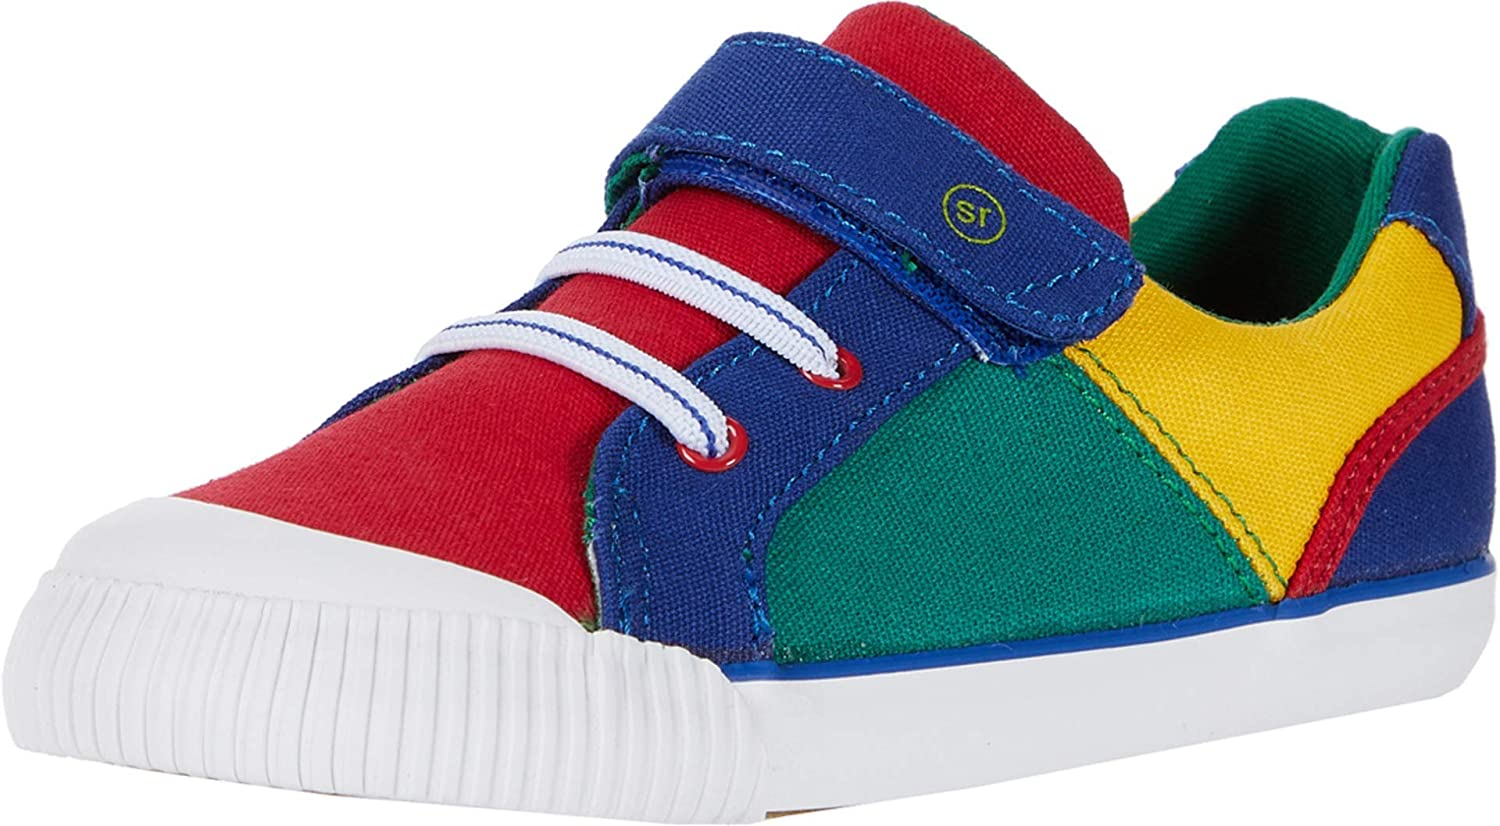 Clearance SALE! Limited time! Stride Max 80% OFF Rite Unisex-Child Sneaker Sr Parker